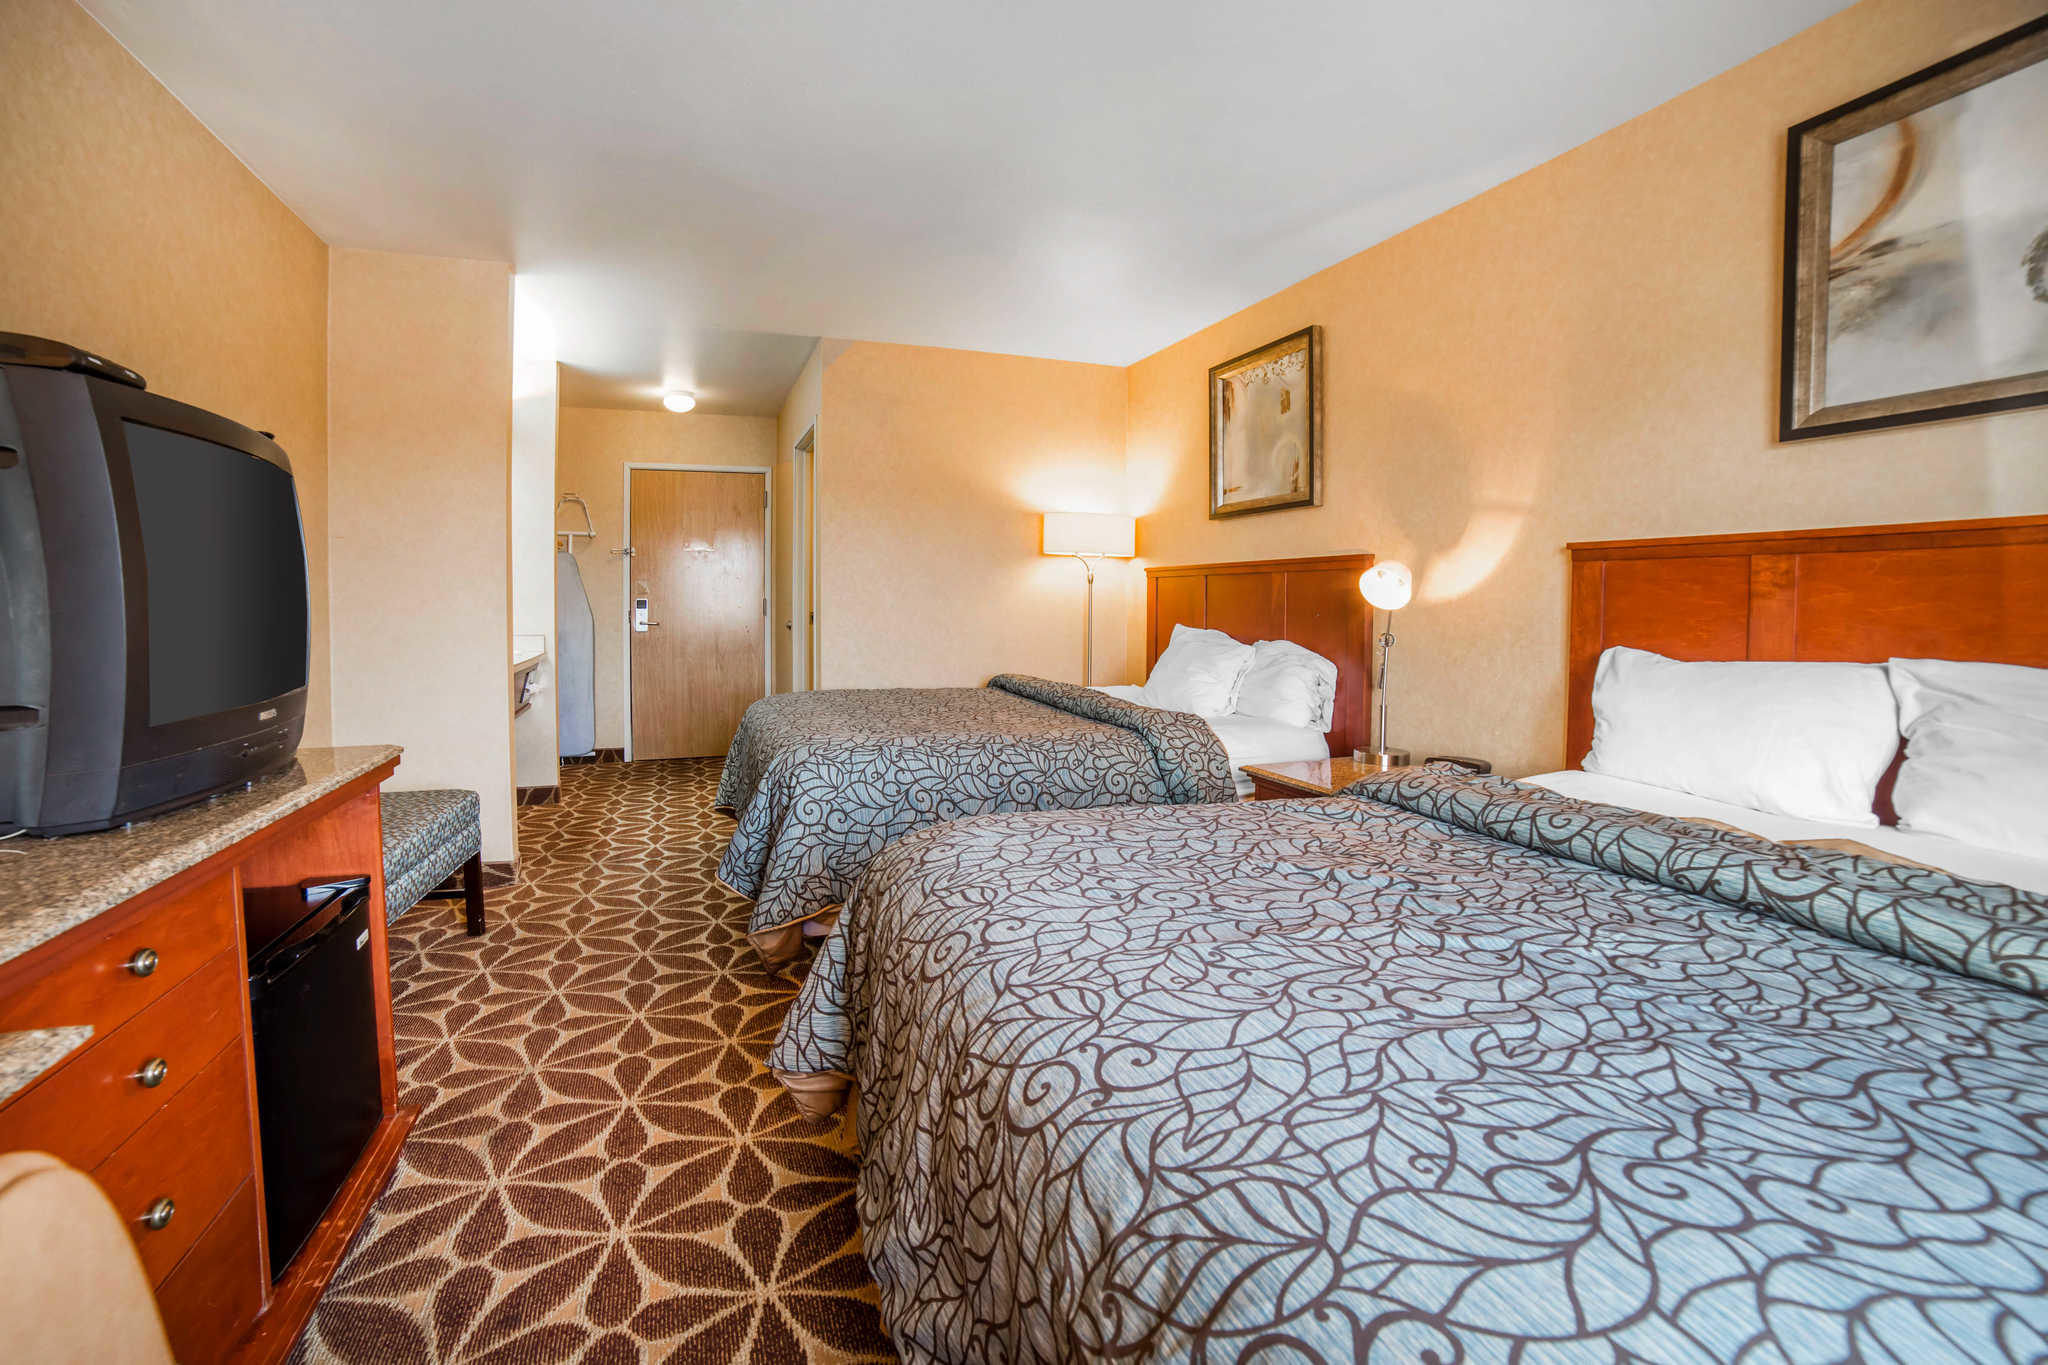 Hotel Rooms In Nampa Idaho